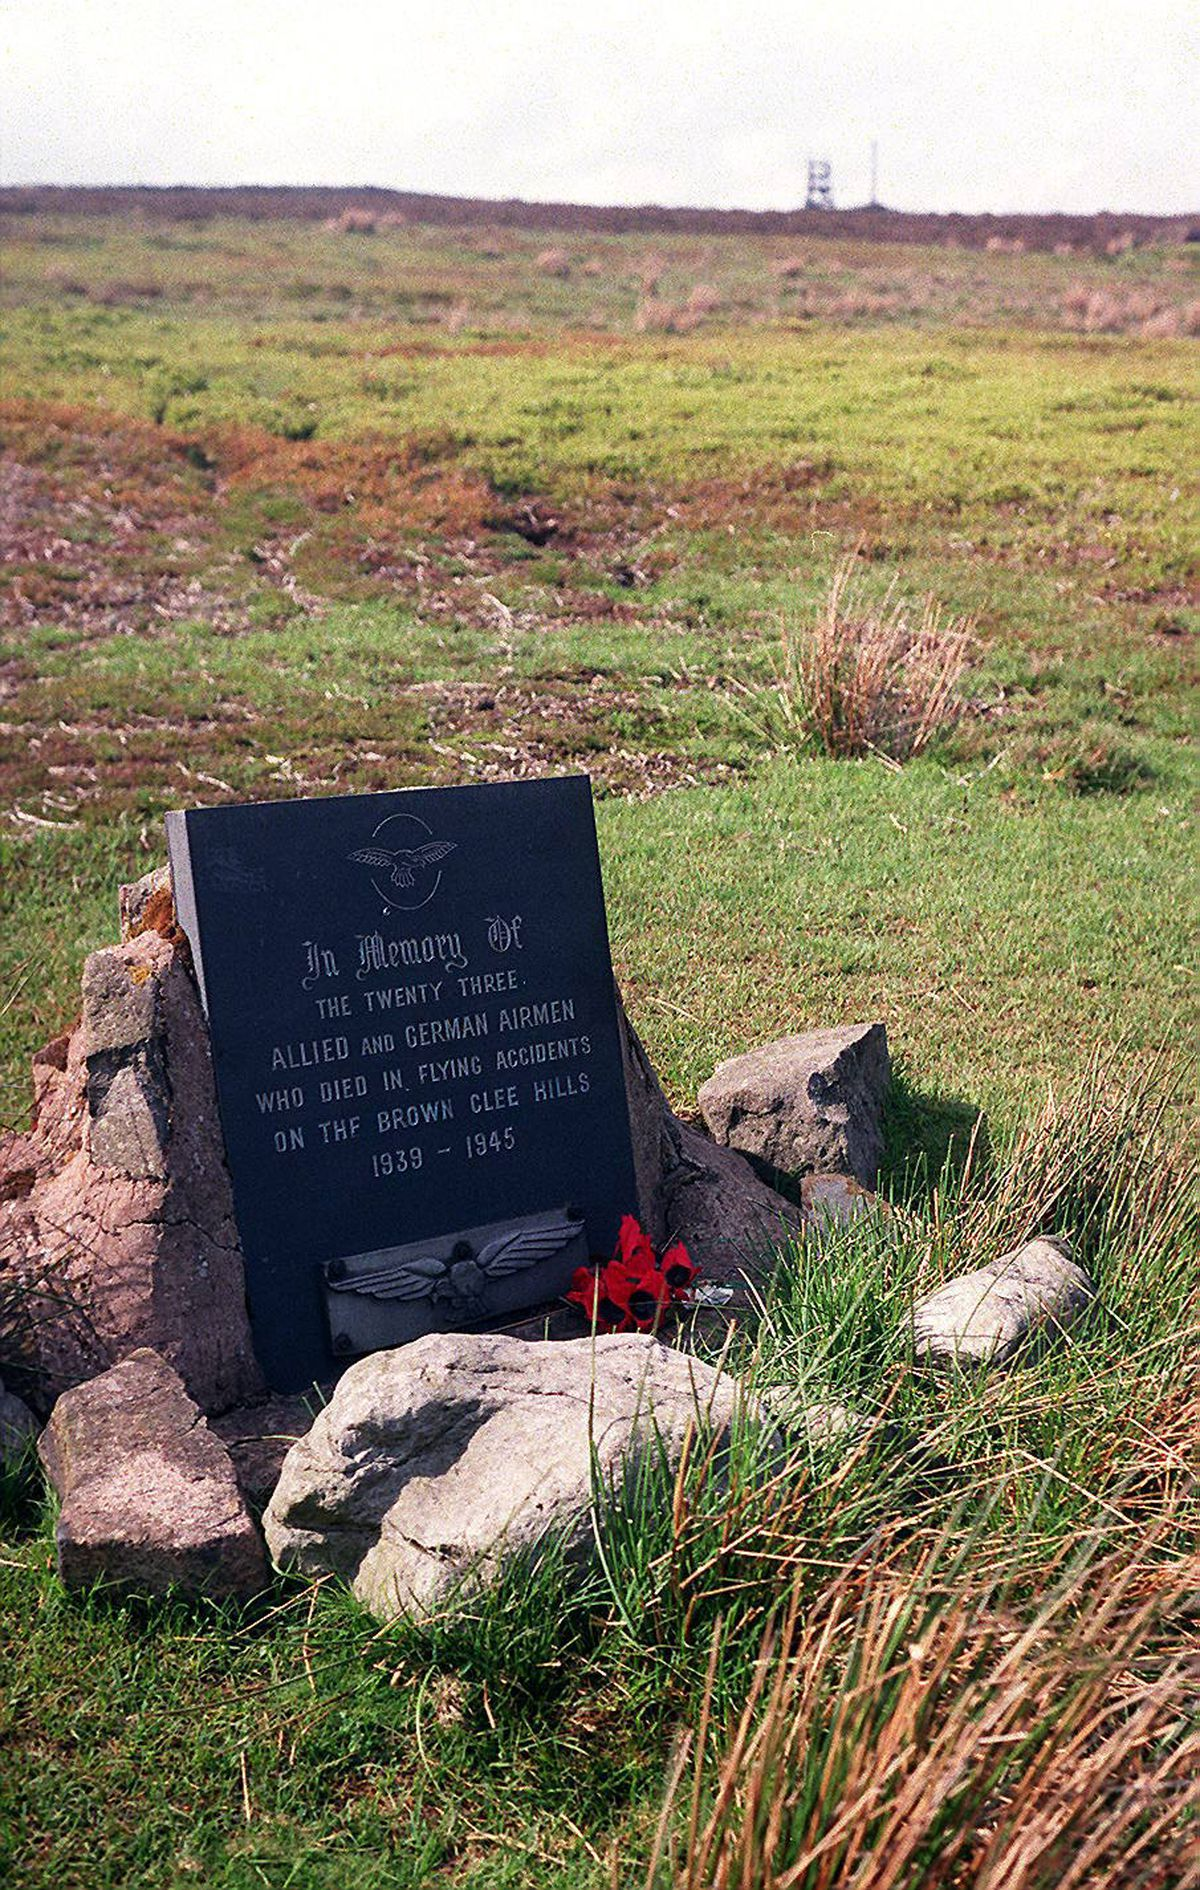 The memorial on Brown Clee Hill was erected without fanfare in 1981.